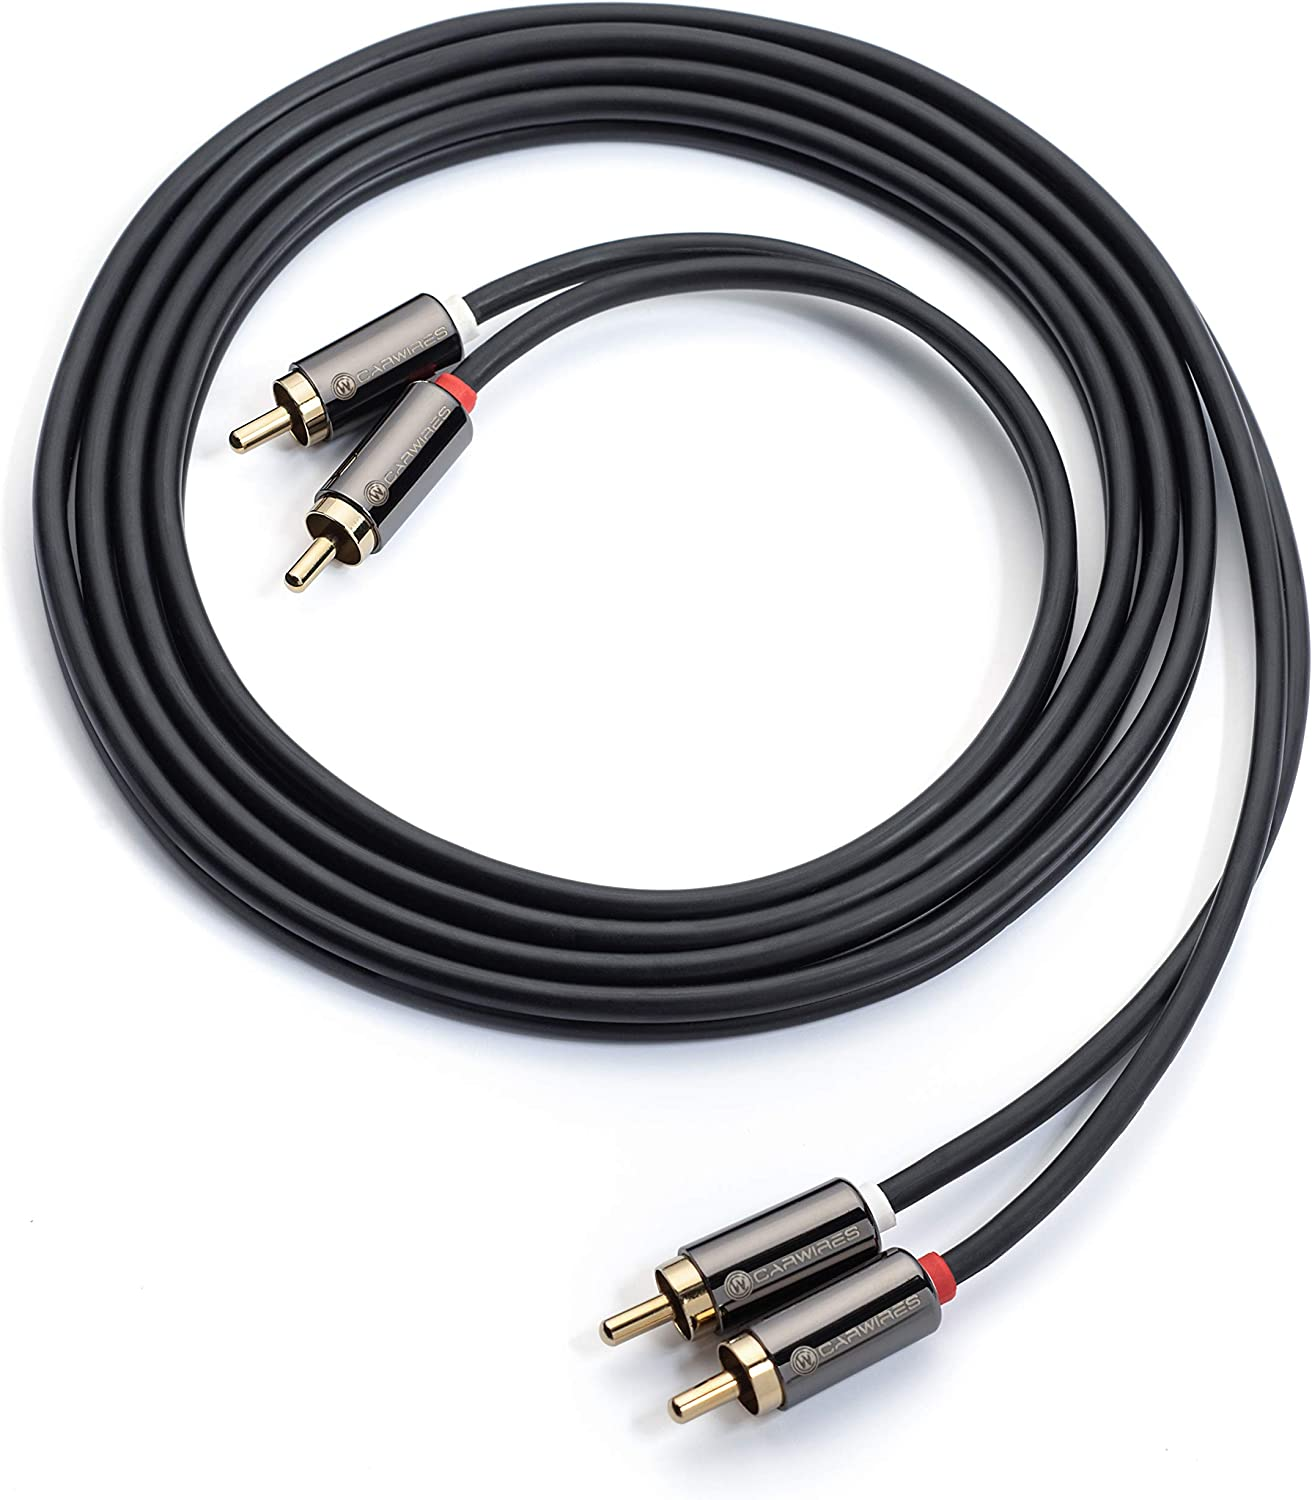 Carwires MJ206A 6 ft. Premium RCA Audio Cable